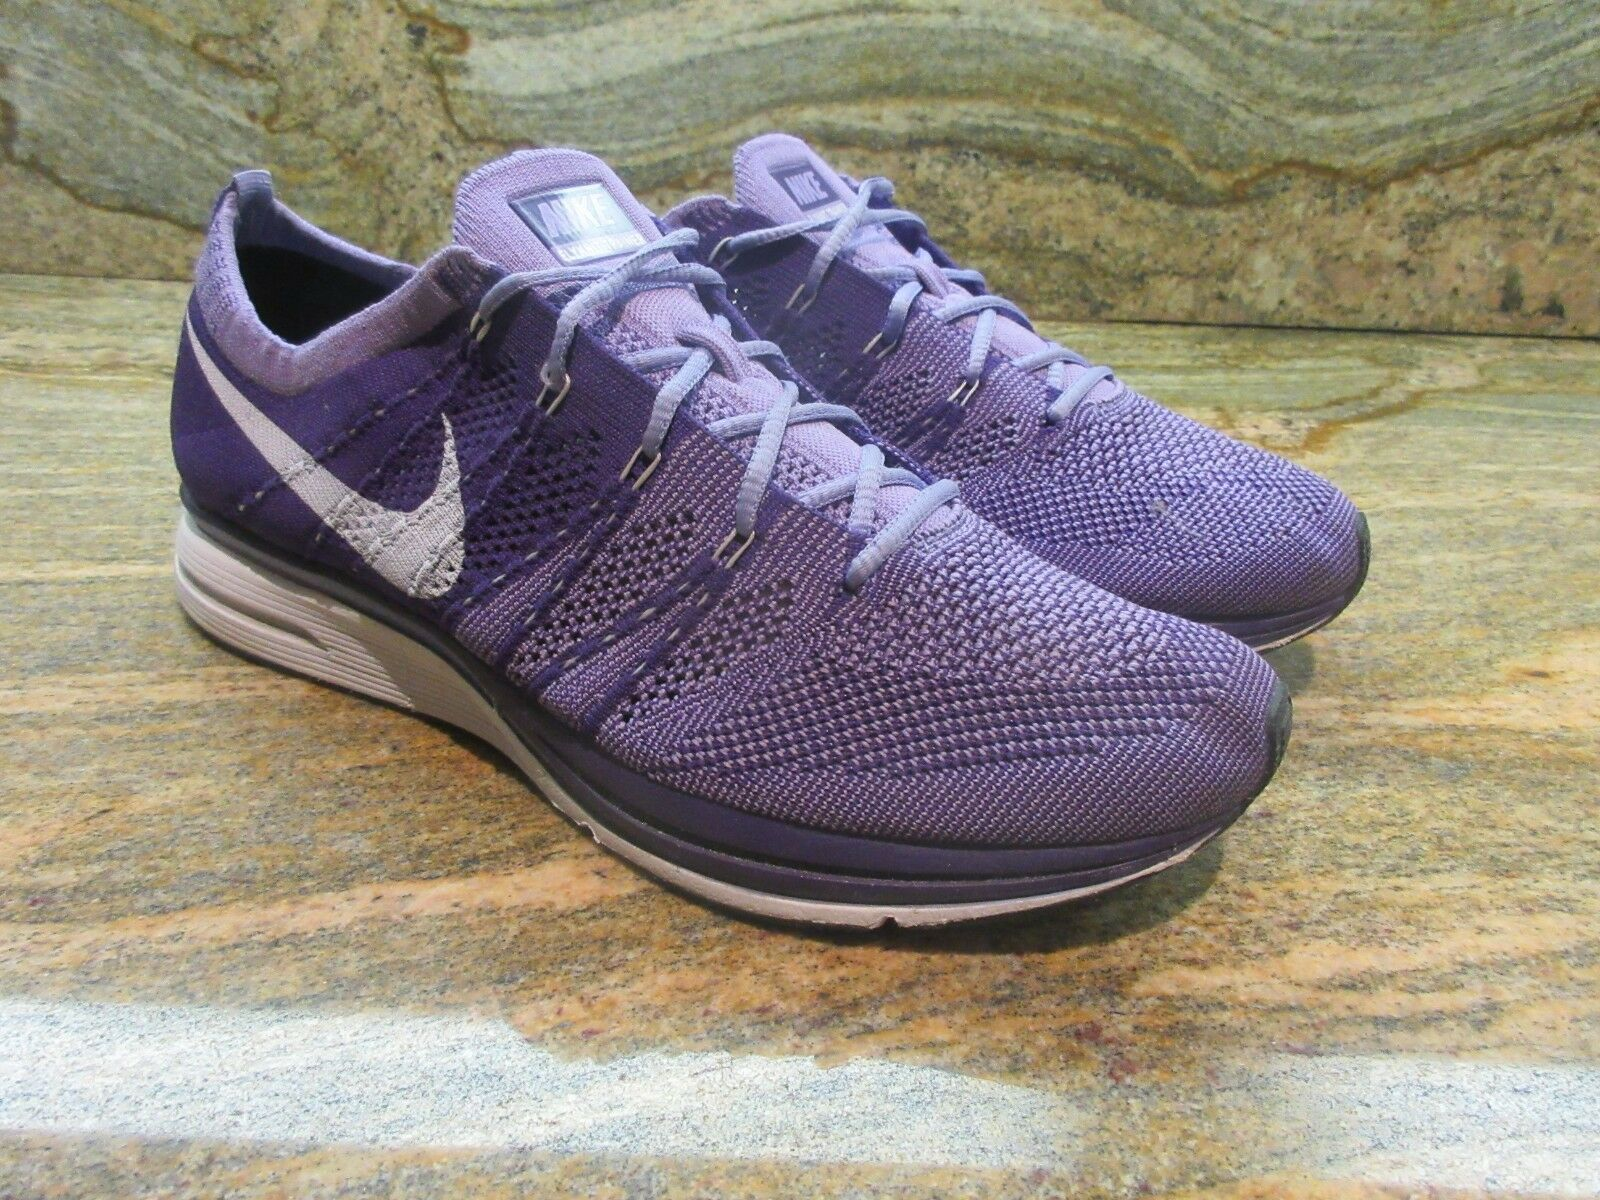 2012 Men's Nike Flyknit Trainer+ SZ 9 Court Purple White Racer purple 532984-551